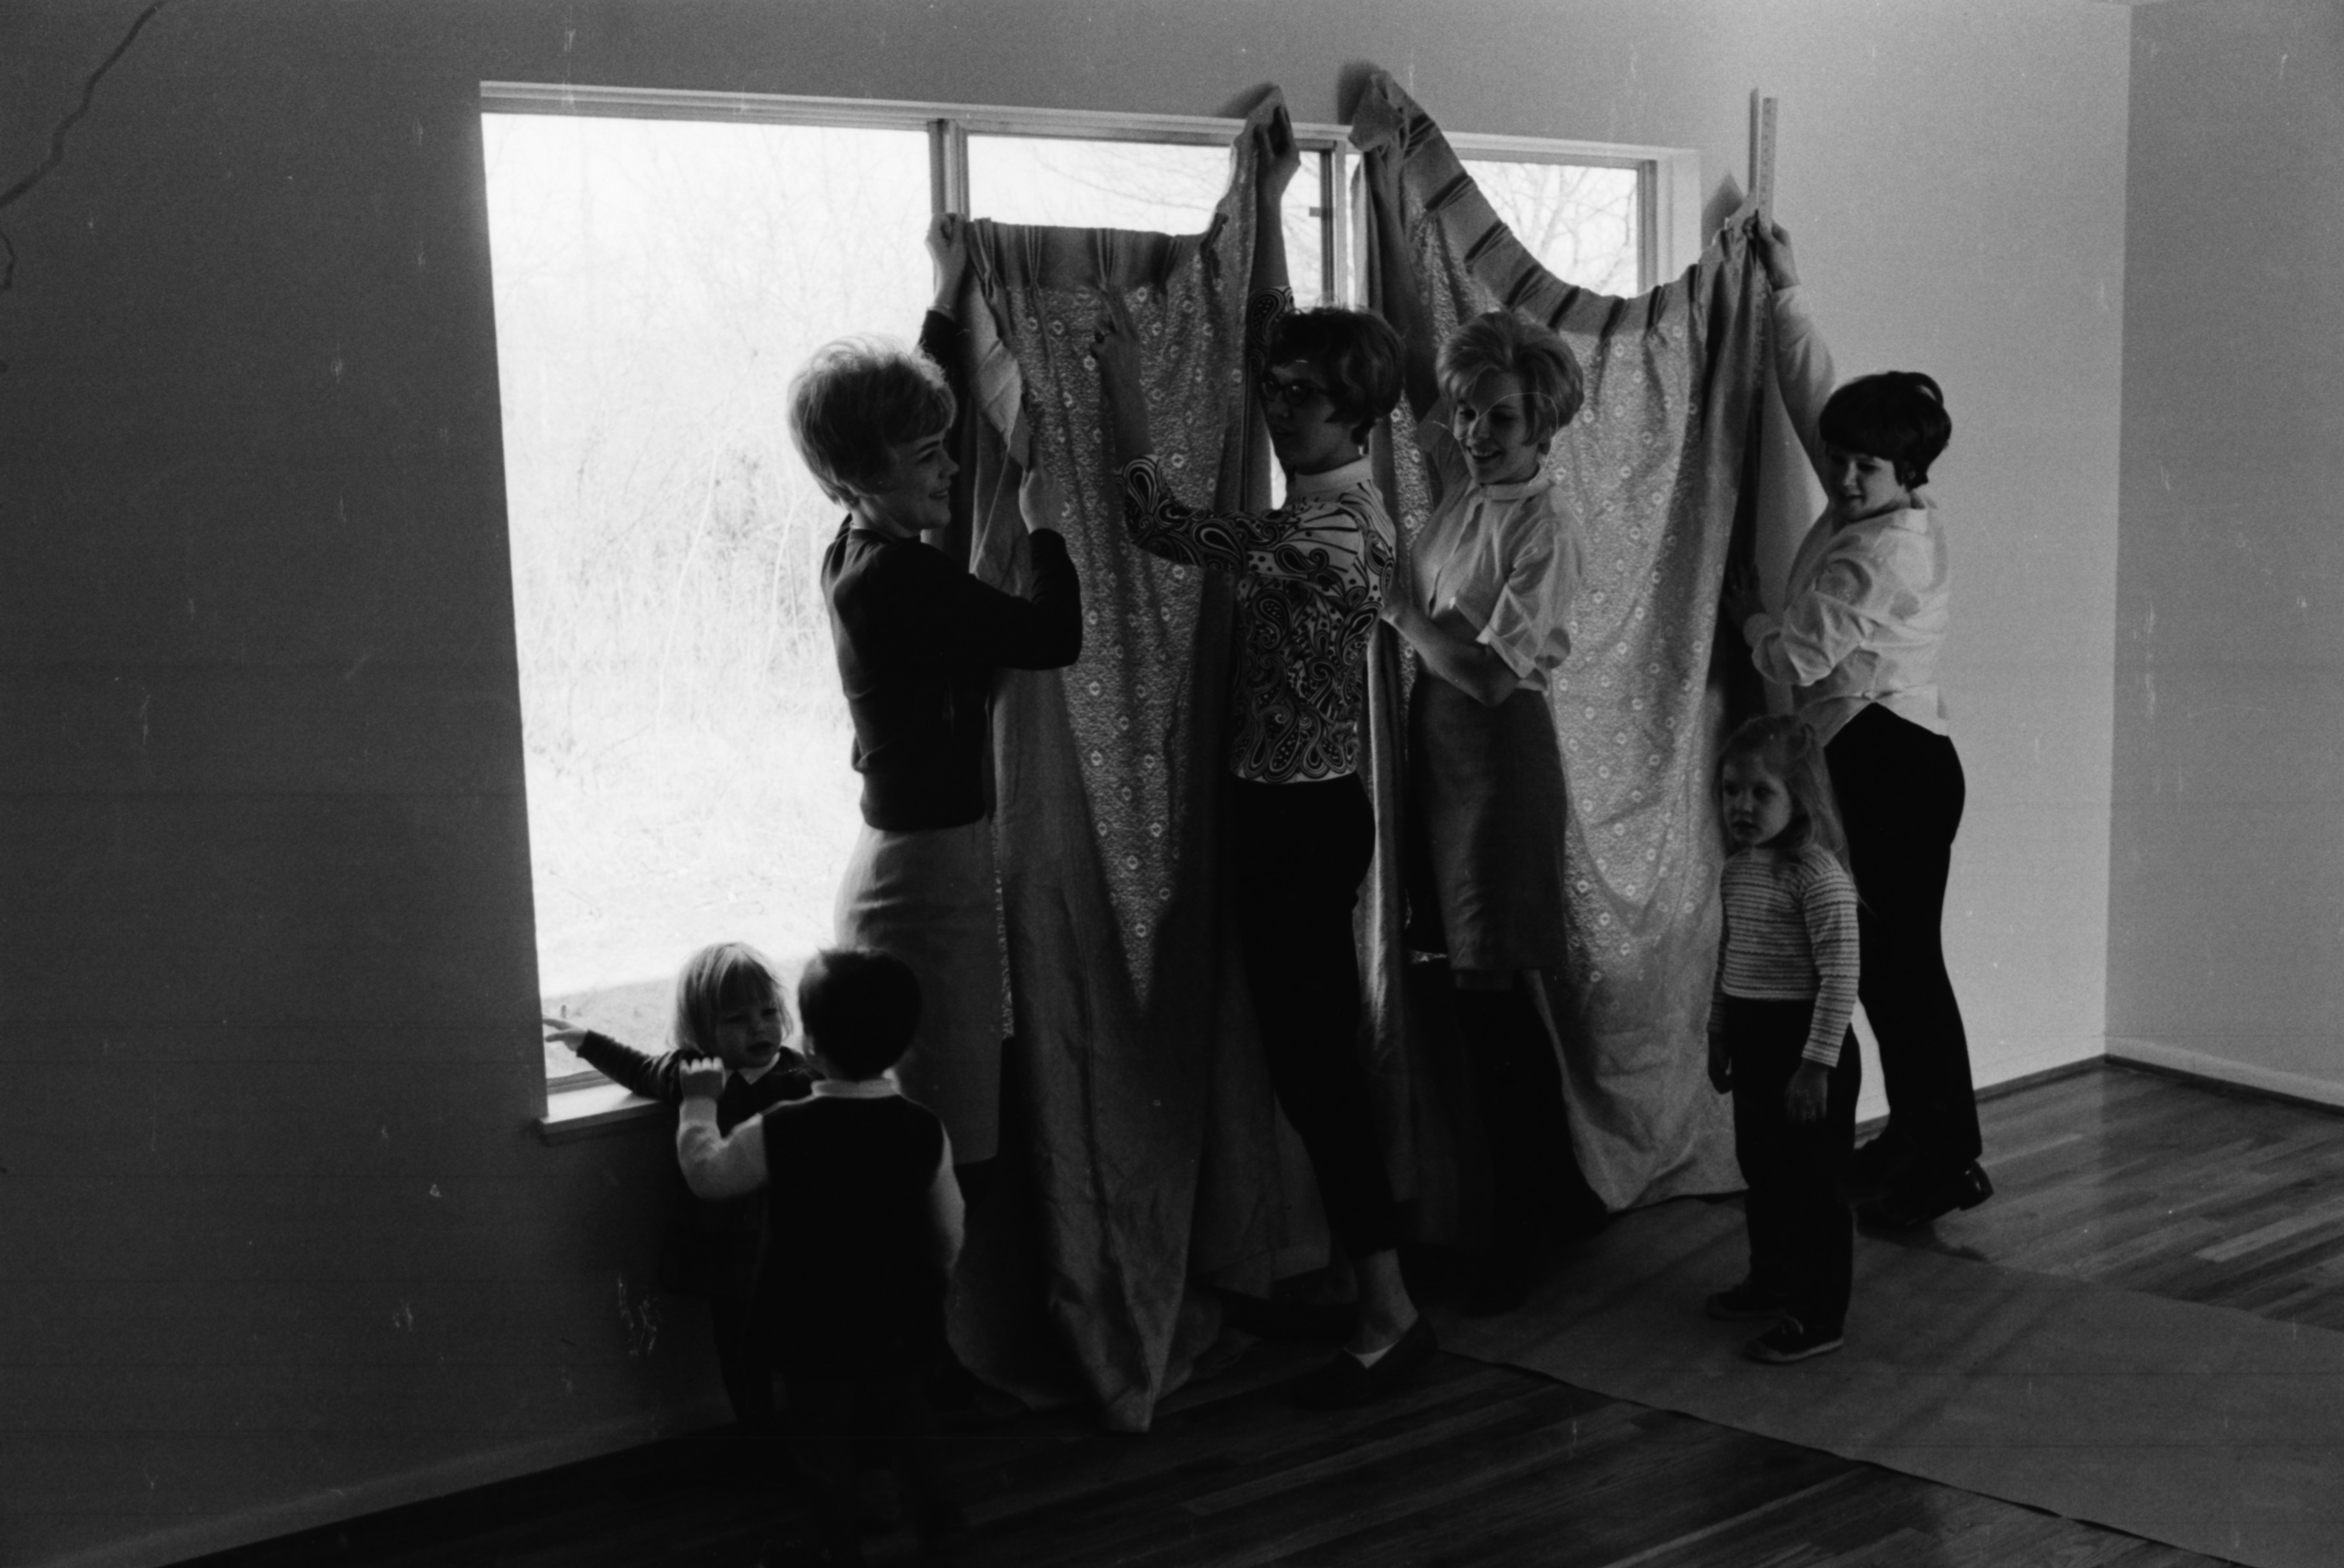 Members of the Ann Arbor Jaycee Auxiliary help with Project Pride, April 1969 image